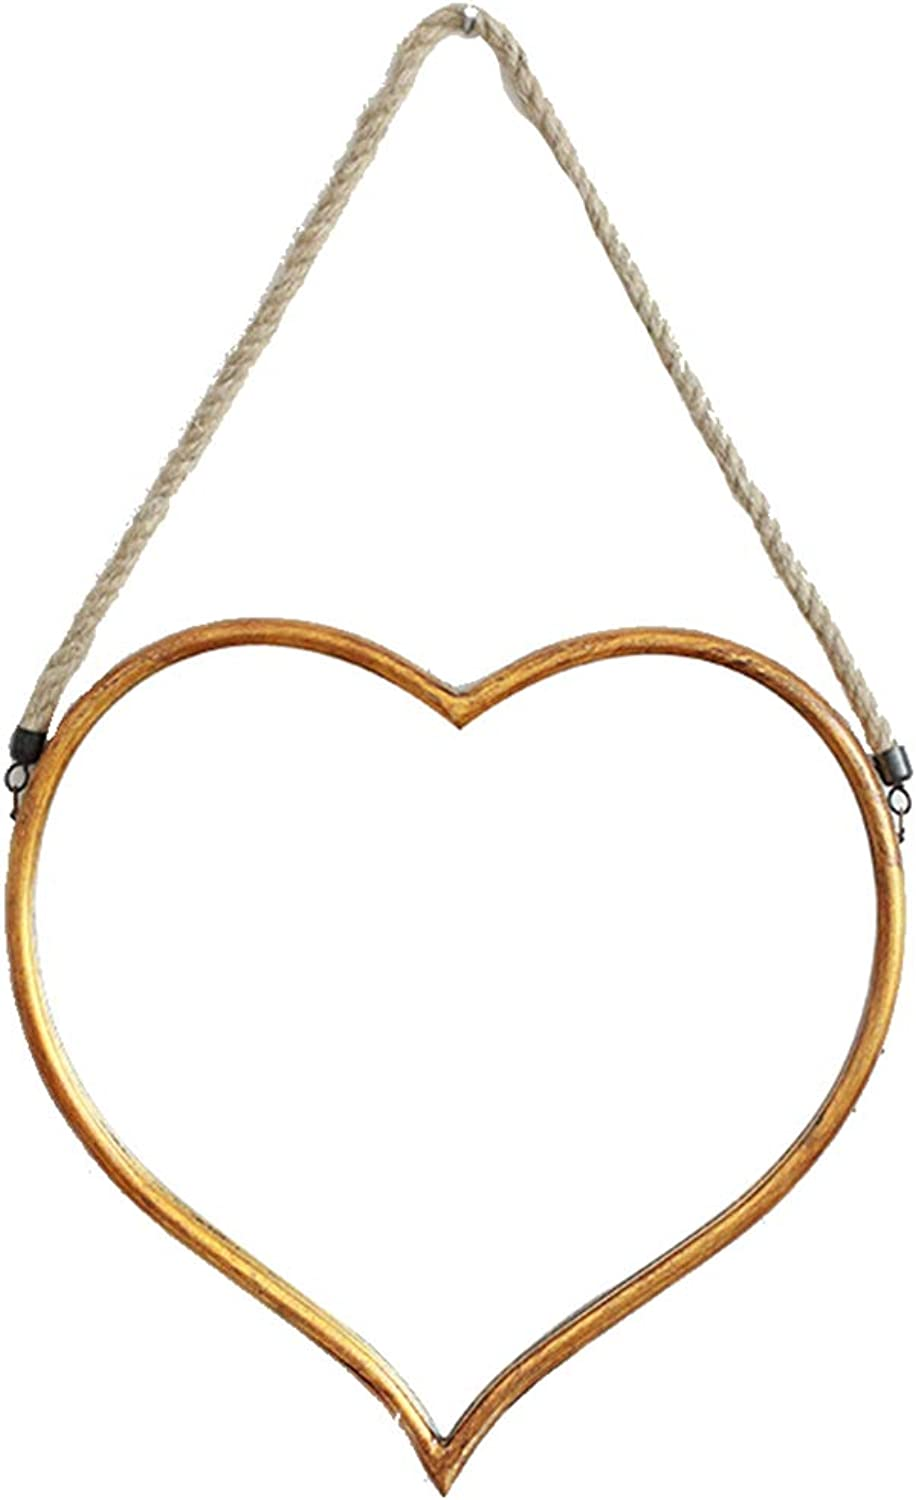 YANZHEN Mirror Wall-Mounted Hemp Rope Home Fashion Bar Bathroom American Heart Shape Iron, 2 Size (color   gold, Size   43x2.5x39cm)